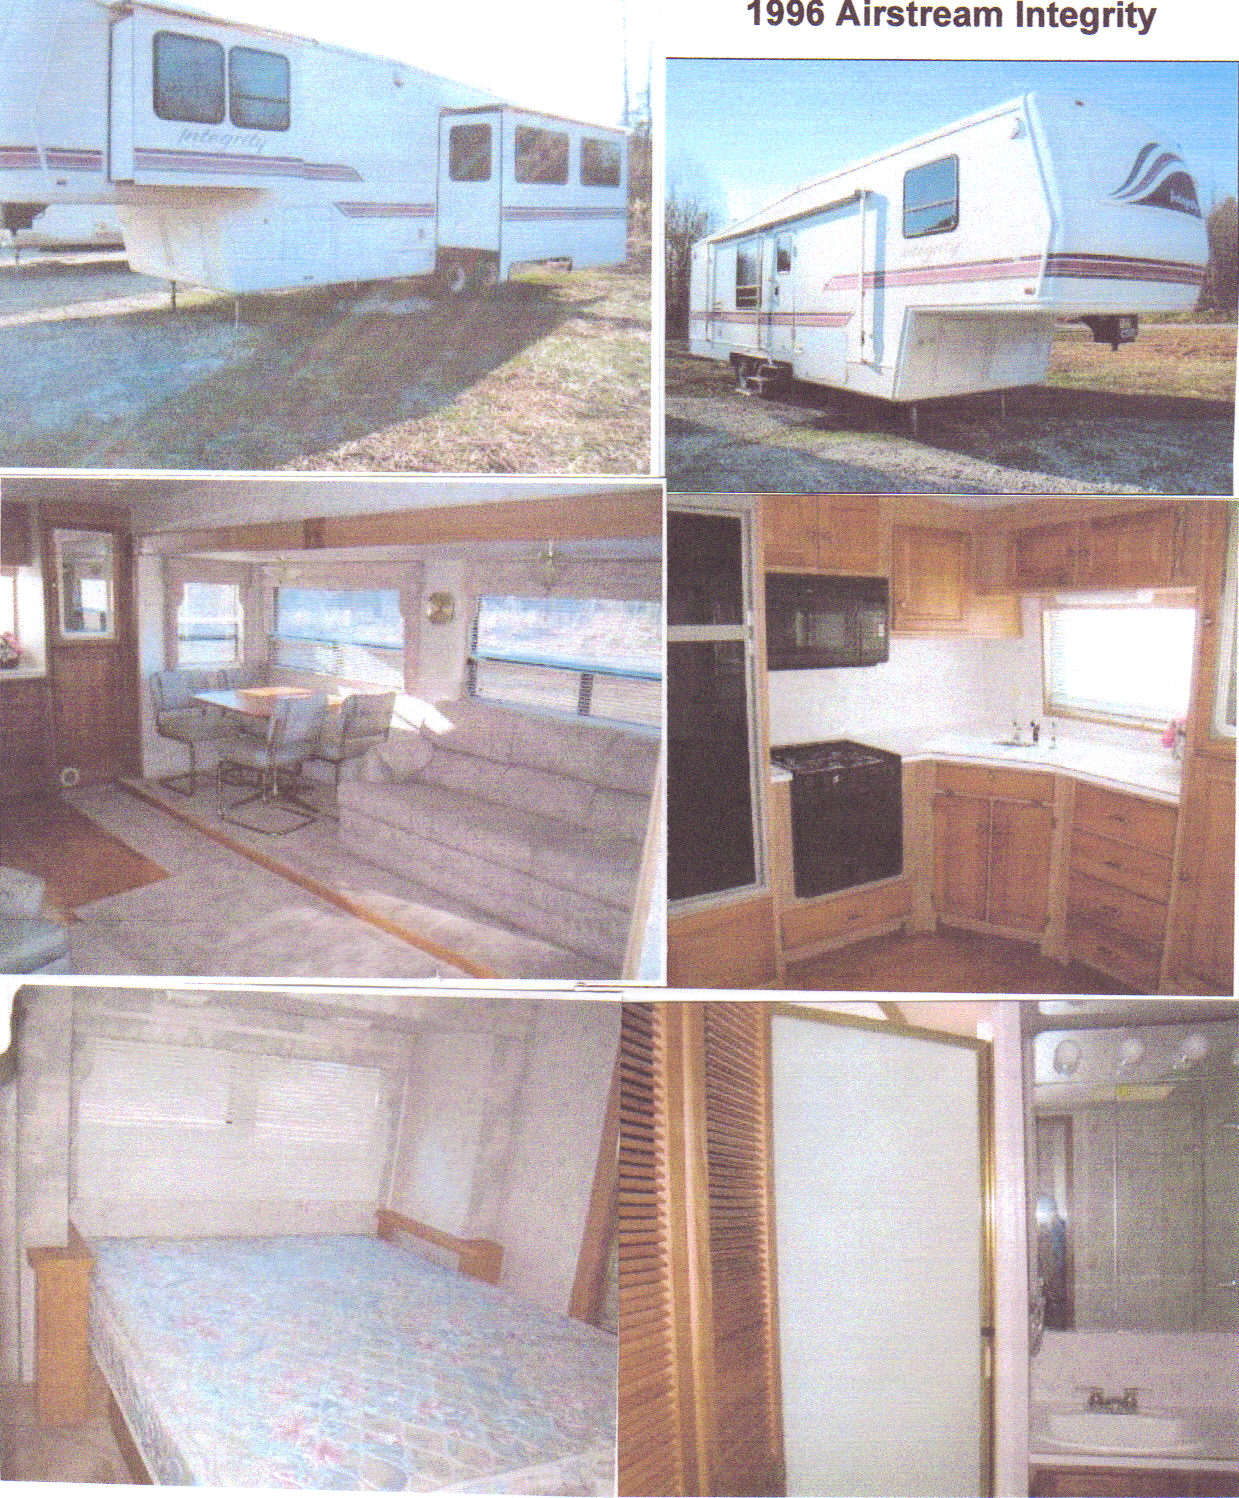 Click image for larger version  Name:1996 Airstream Integrity 4.jpg Views:379 Size:839.2 KB ID:69372